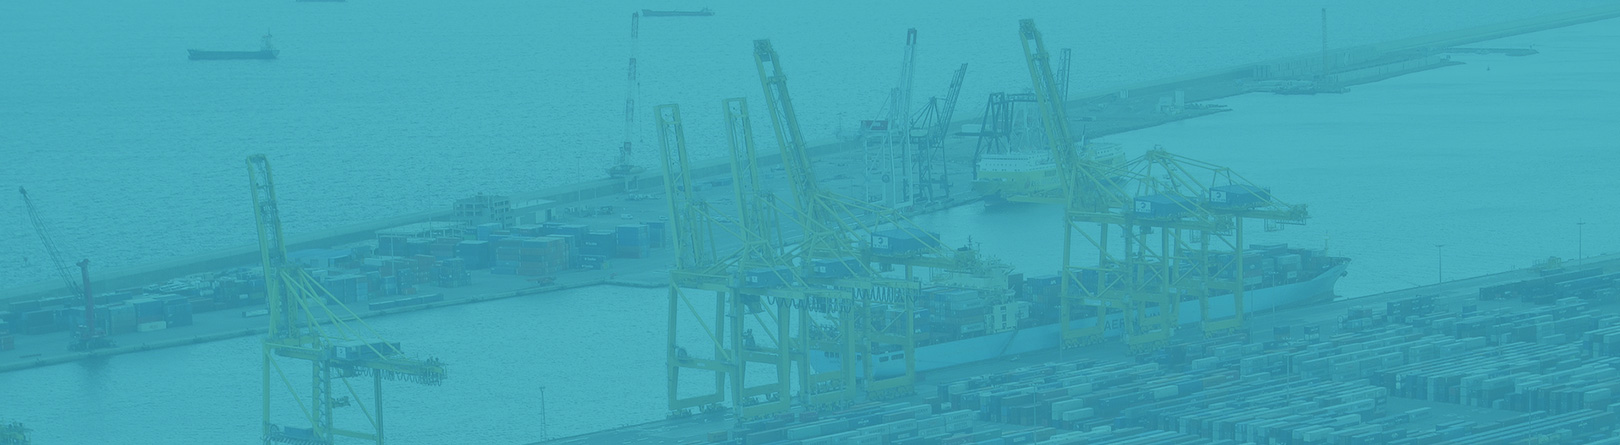 Importers & Exporters | B2B Pay powered by Barclays